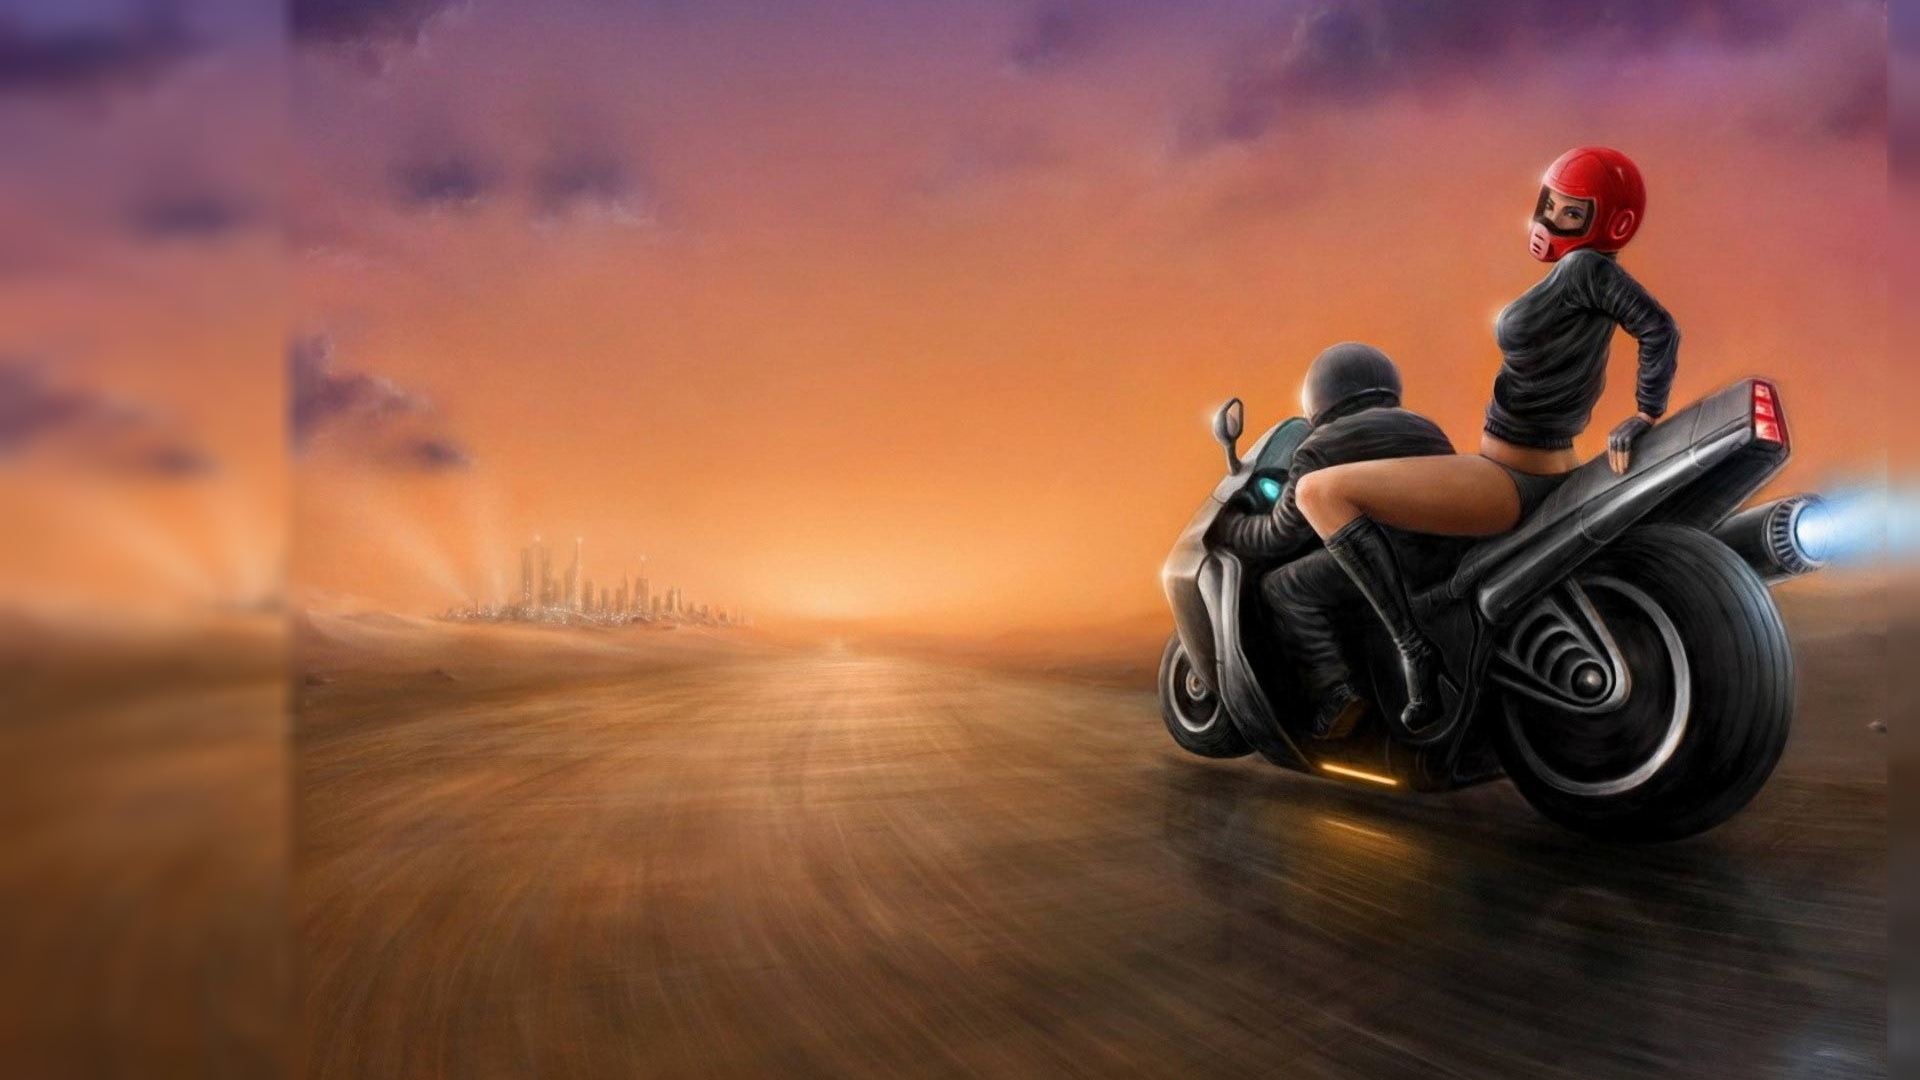 Motorcycle Wallpapers Best Wallpapers 1920x1080